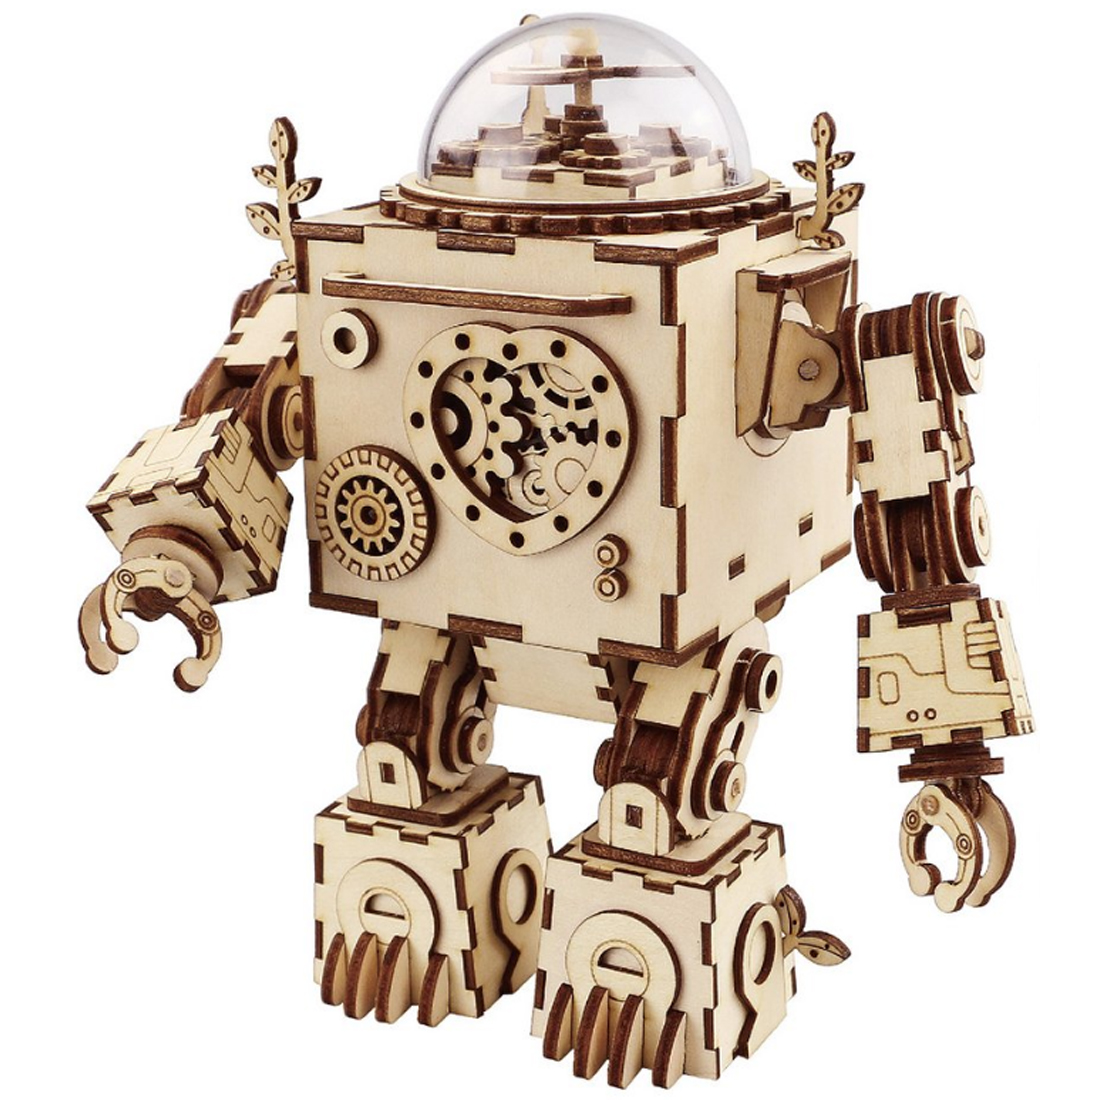 Robot Model Wooden Gear DIY 3D Puzzle Steampunk Music Box for Patience and Hands on Ability Development Burlywood